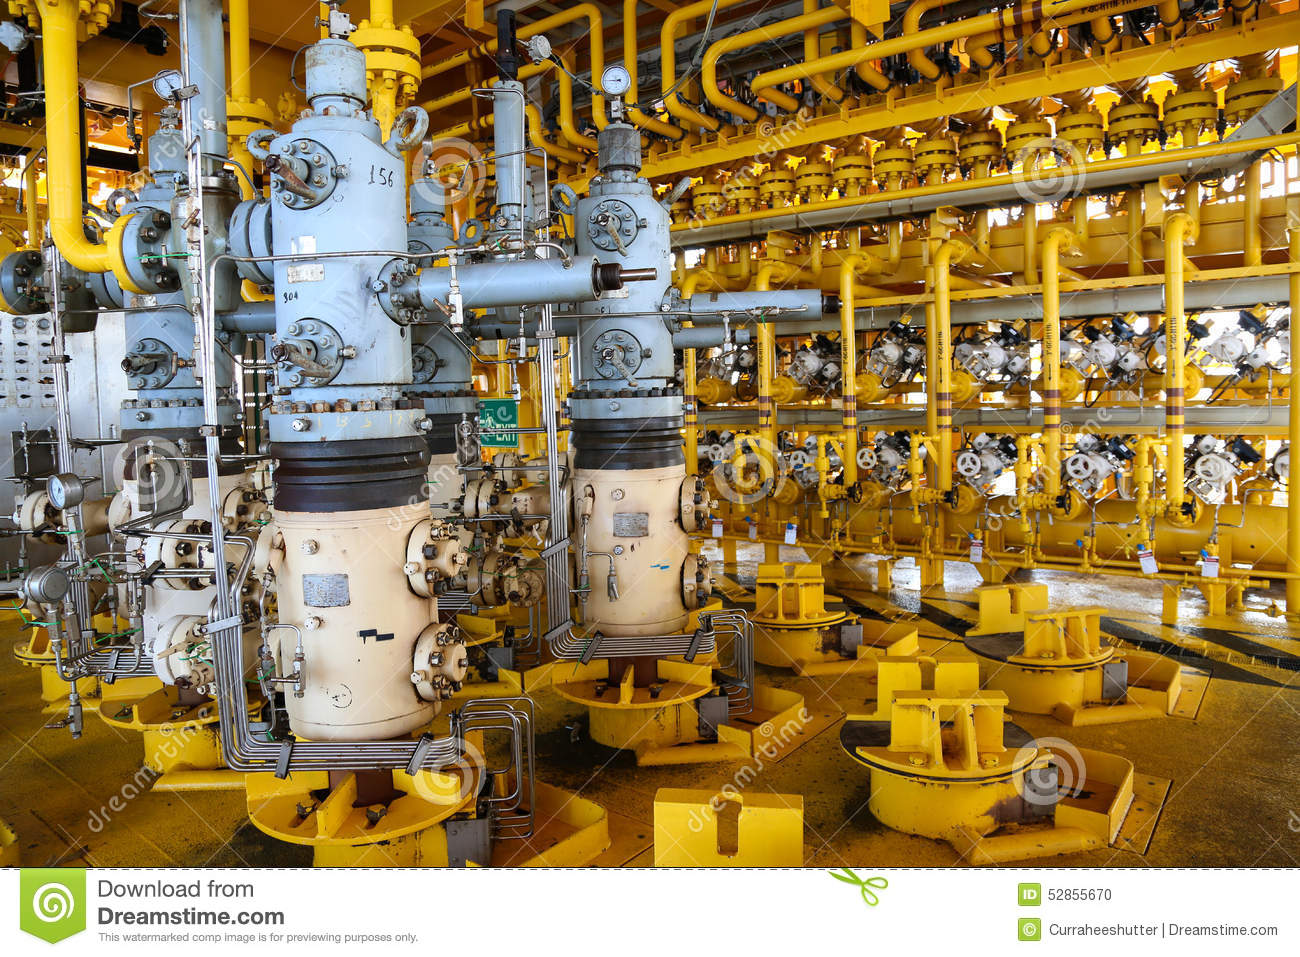 internationalization in oil gas industry Discover all relevant statistics and facts on the global oil industry and market now on statistacom us oil and gas industry more interesting topics from.